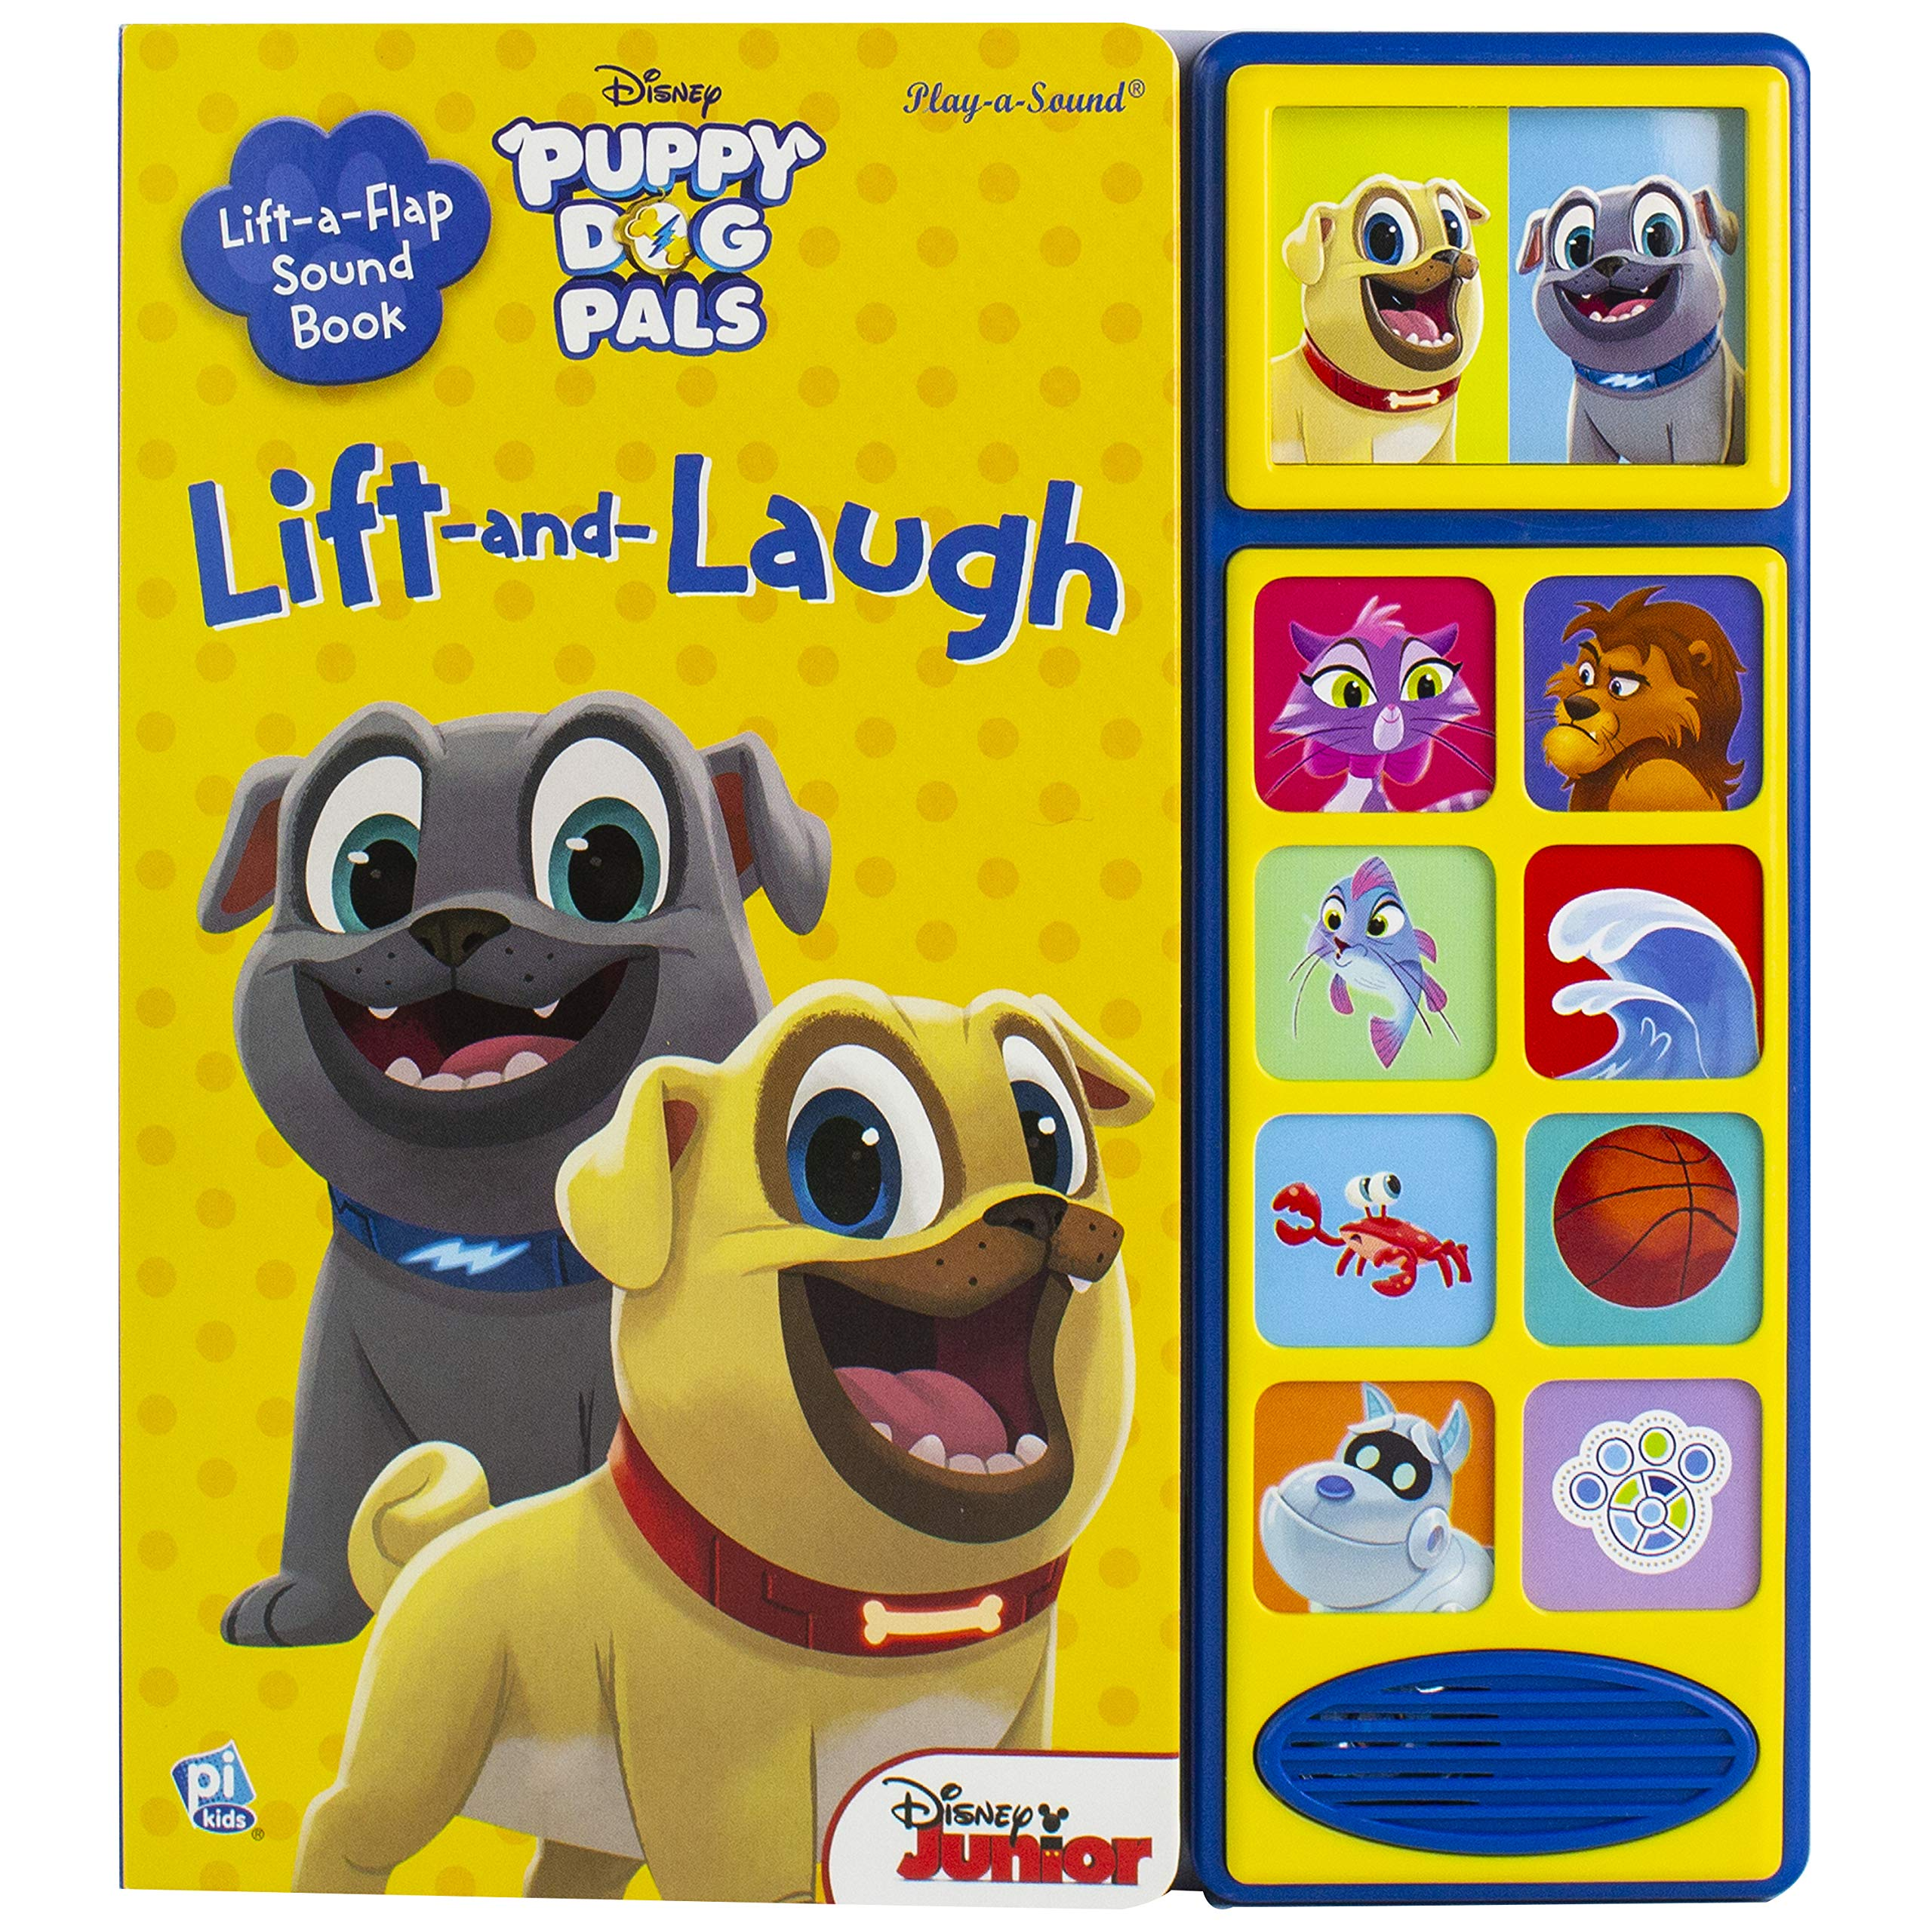 Disney Junior Puppy Dog Pals Lift and Laugh Book Only $8.27!